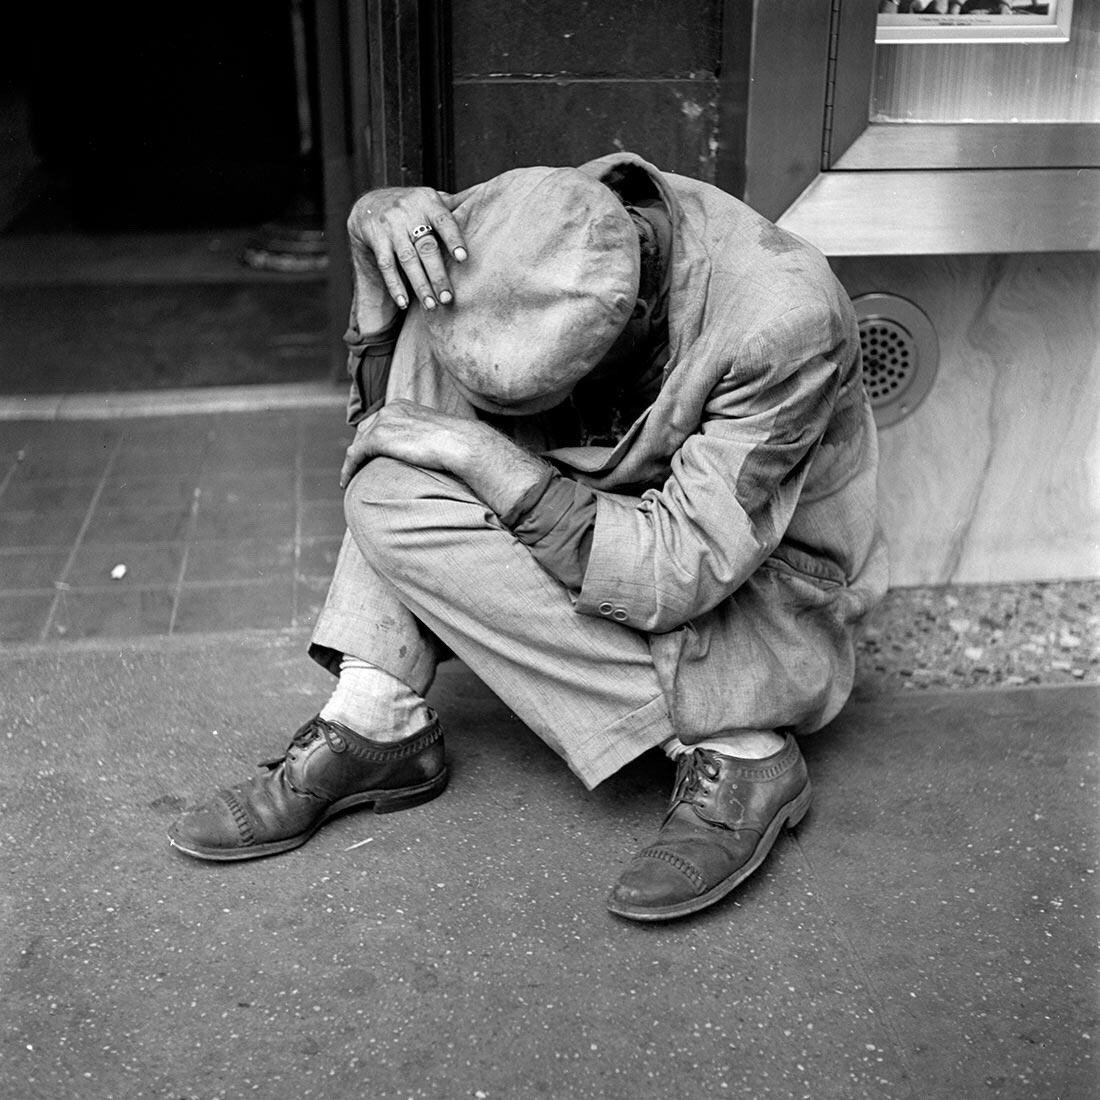 Homeless in New York, 1953 by Vivian Maier - Photography and solitude